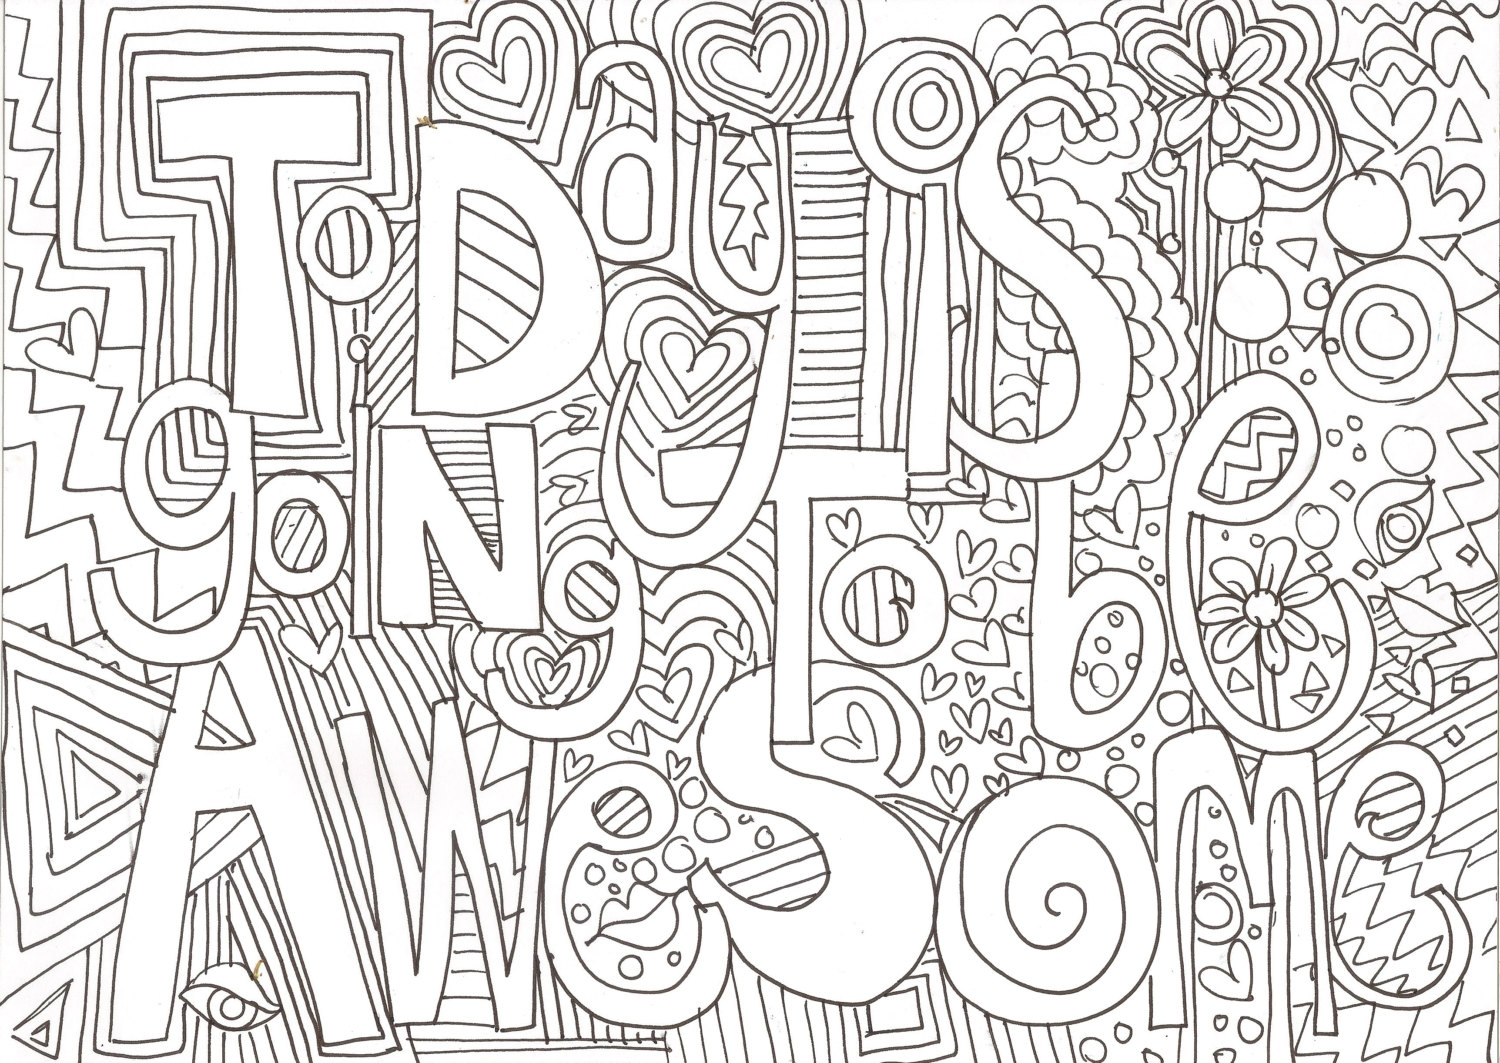 positive coloring pages - colouring page today is going to be